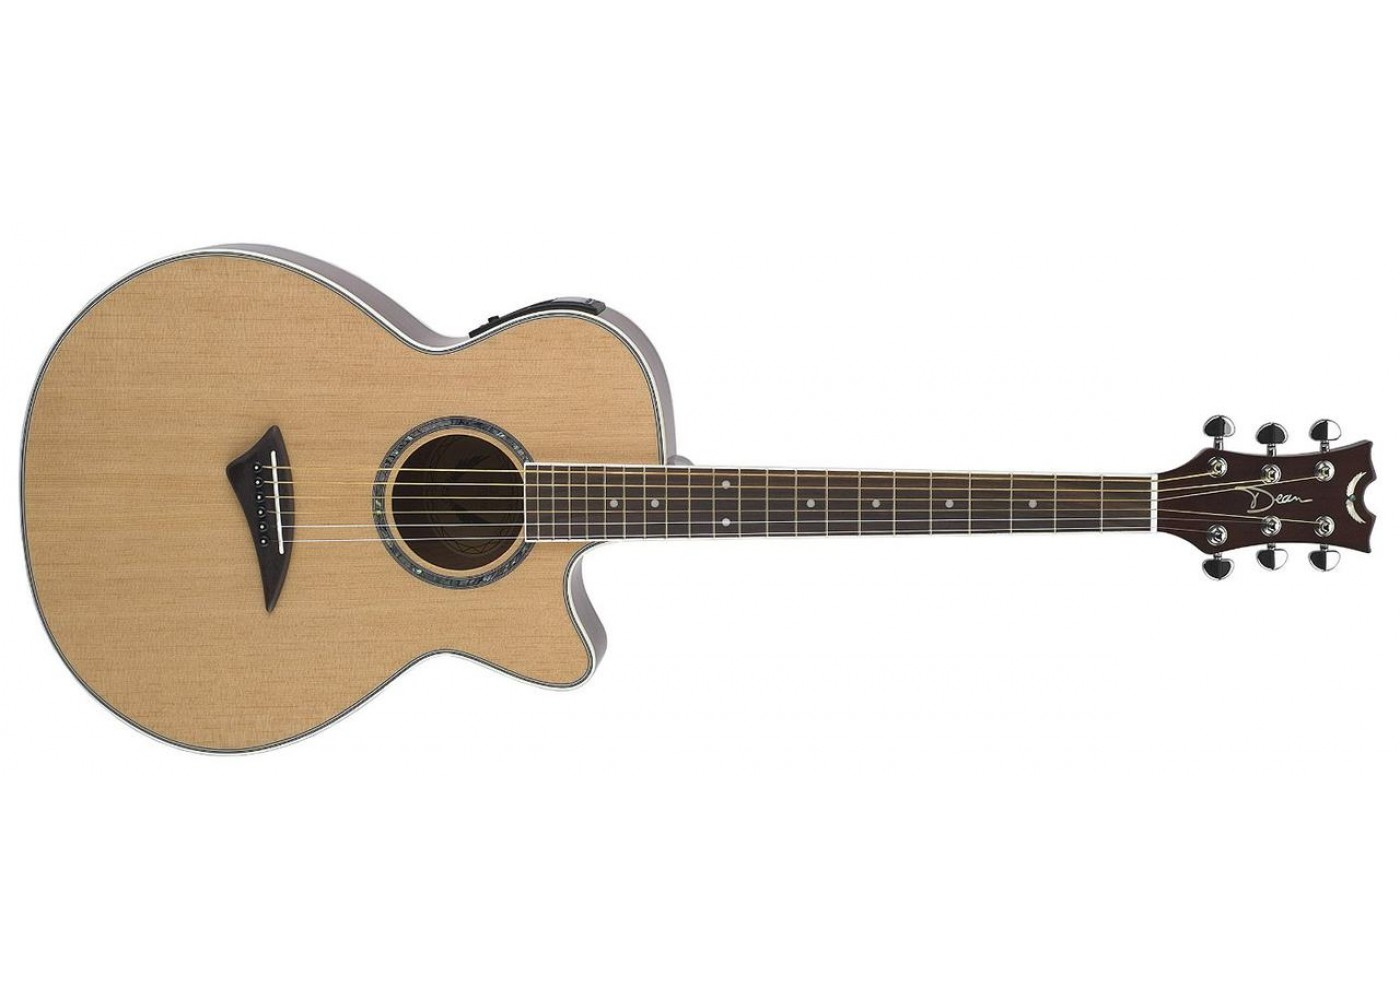 dean pegn performer spruce top mahogany back and sides acoustic electric guitar gloss natural. Black Bedroom Furniture Sets. Home Design Ideas